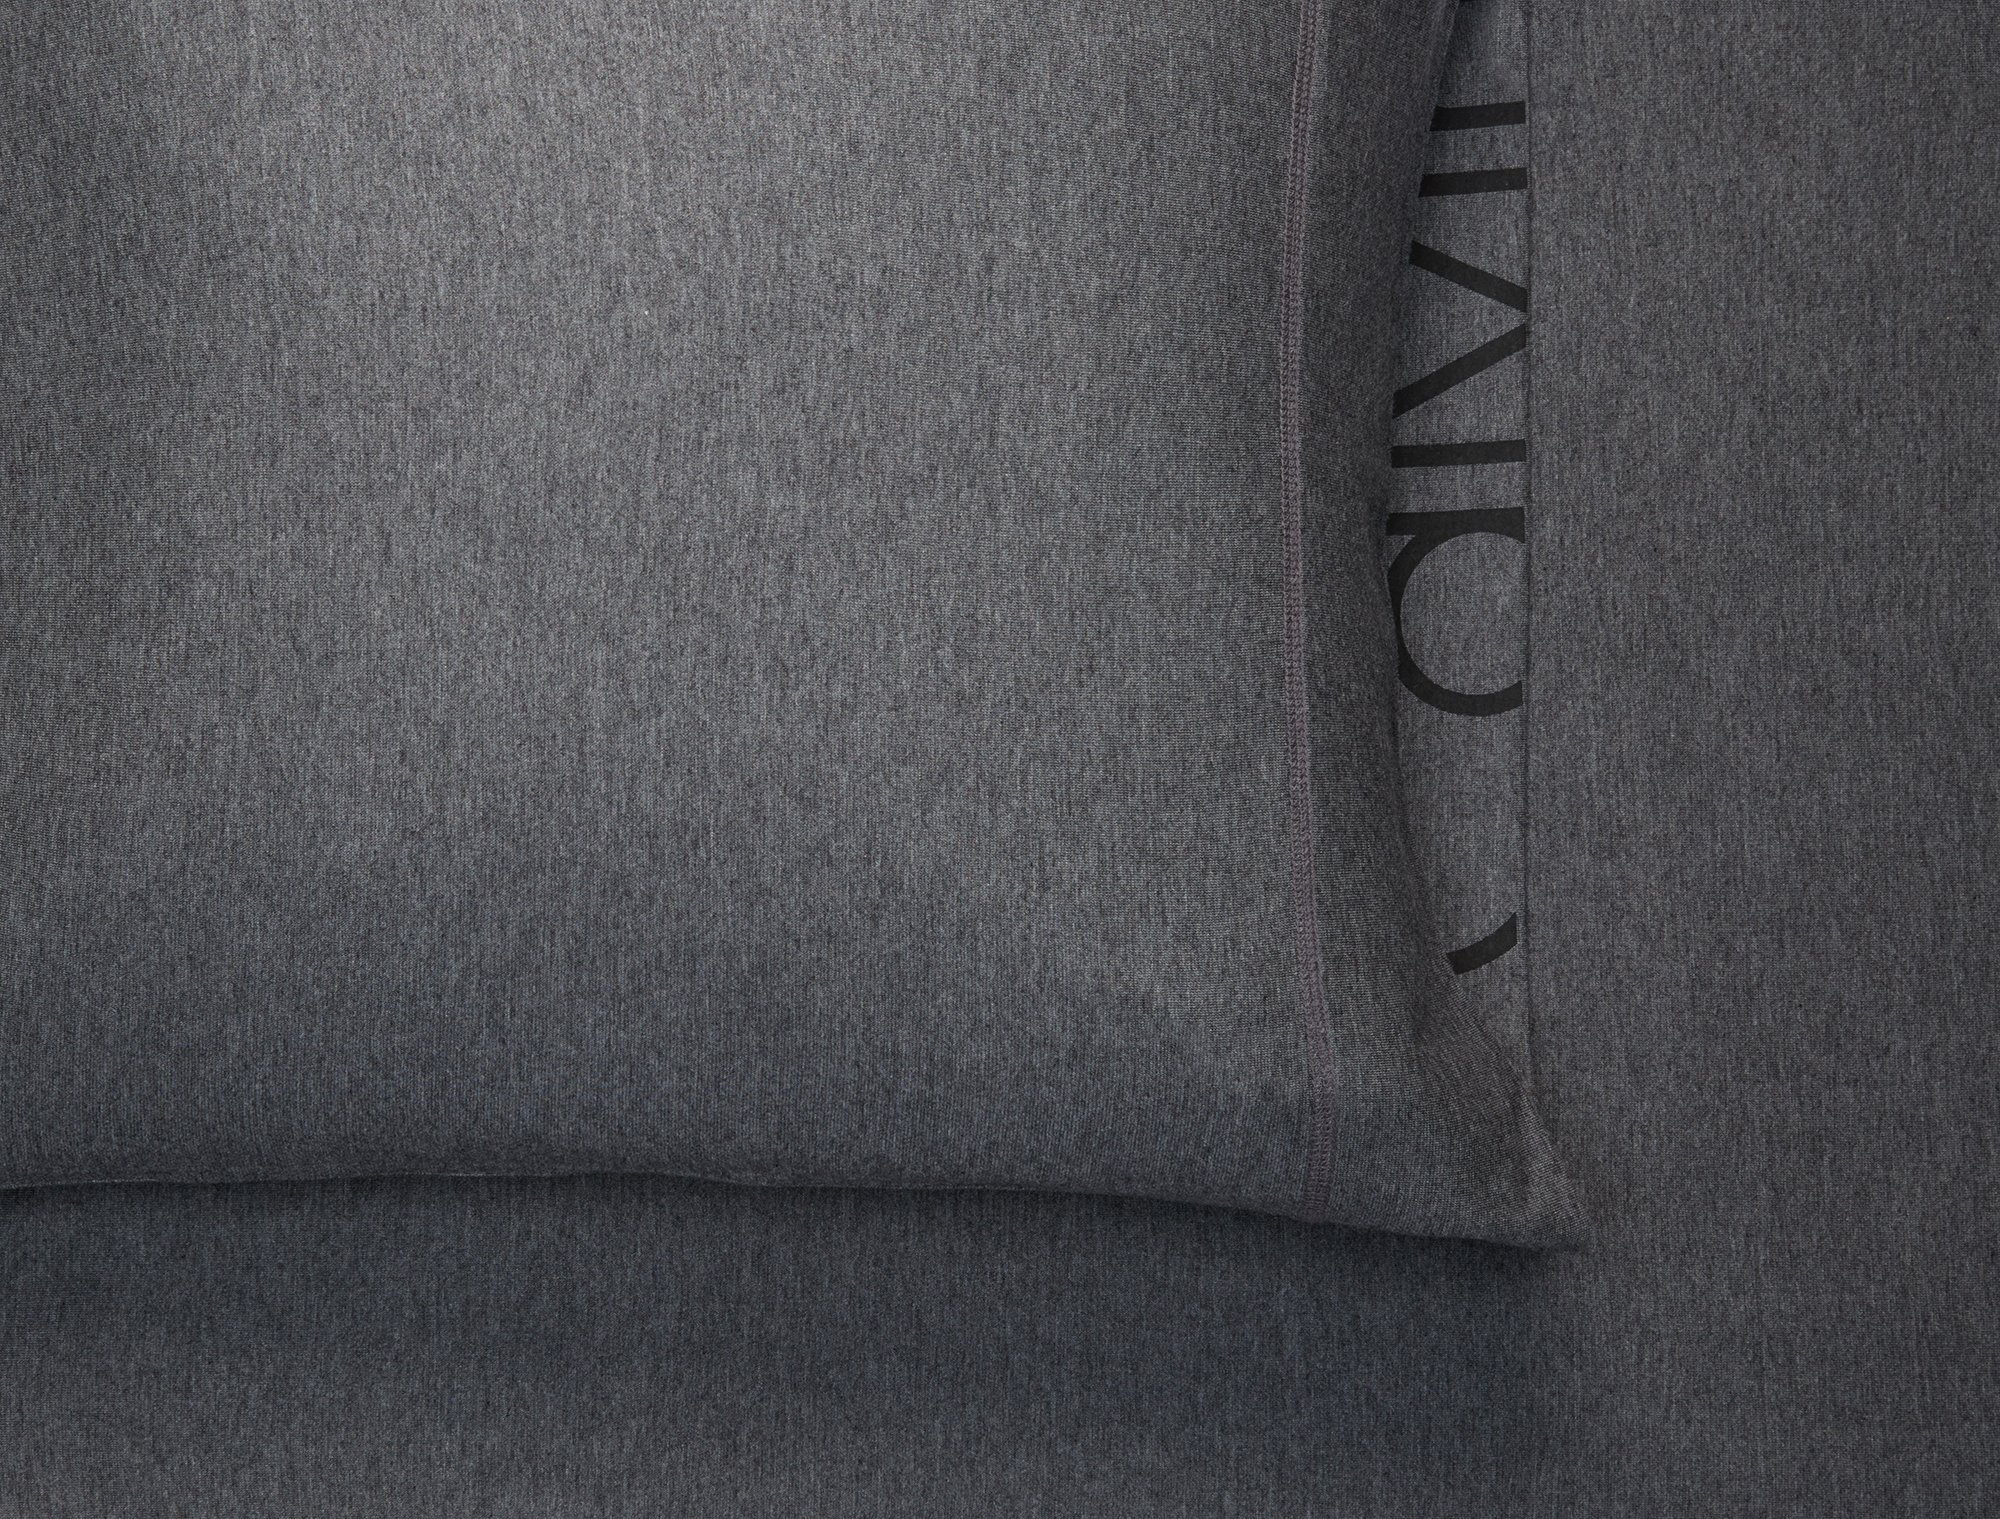 Calvin Klein Home Modern Cotton Body Duvet Cover, King, Charcoal by Calvin Klein (Image #4)